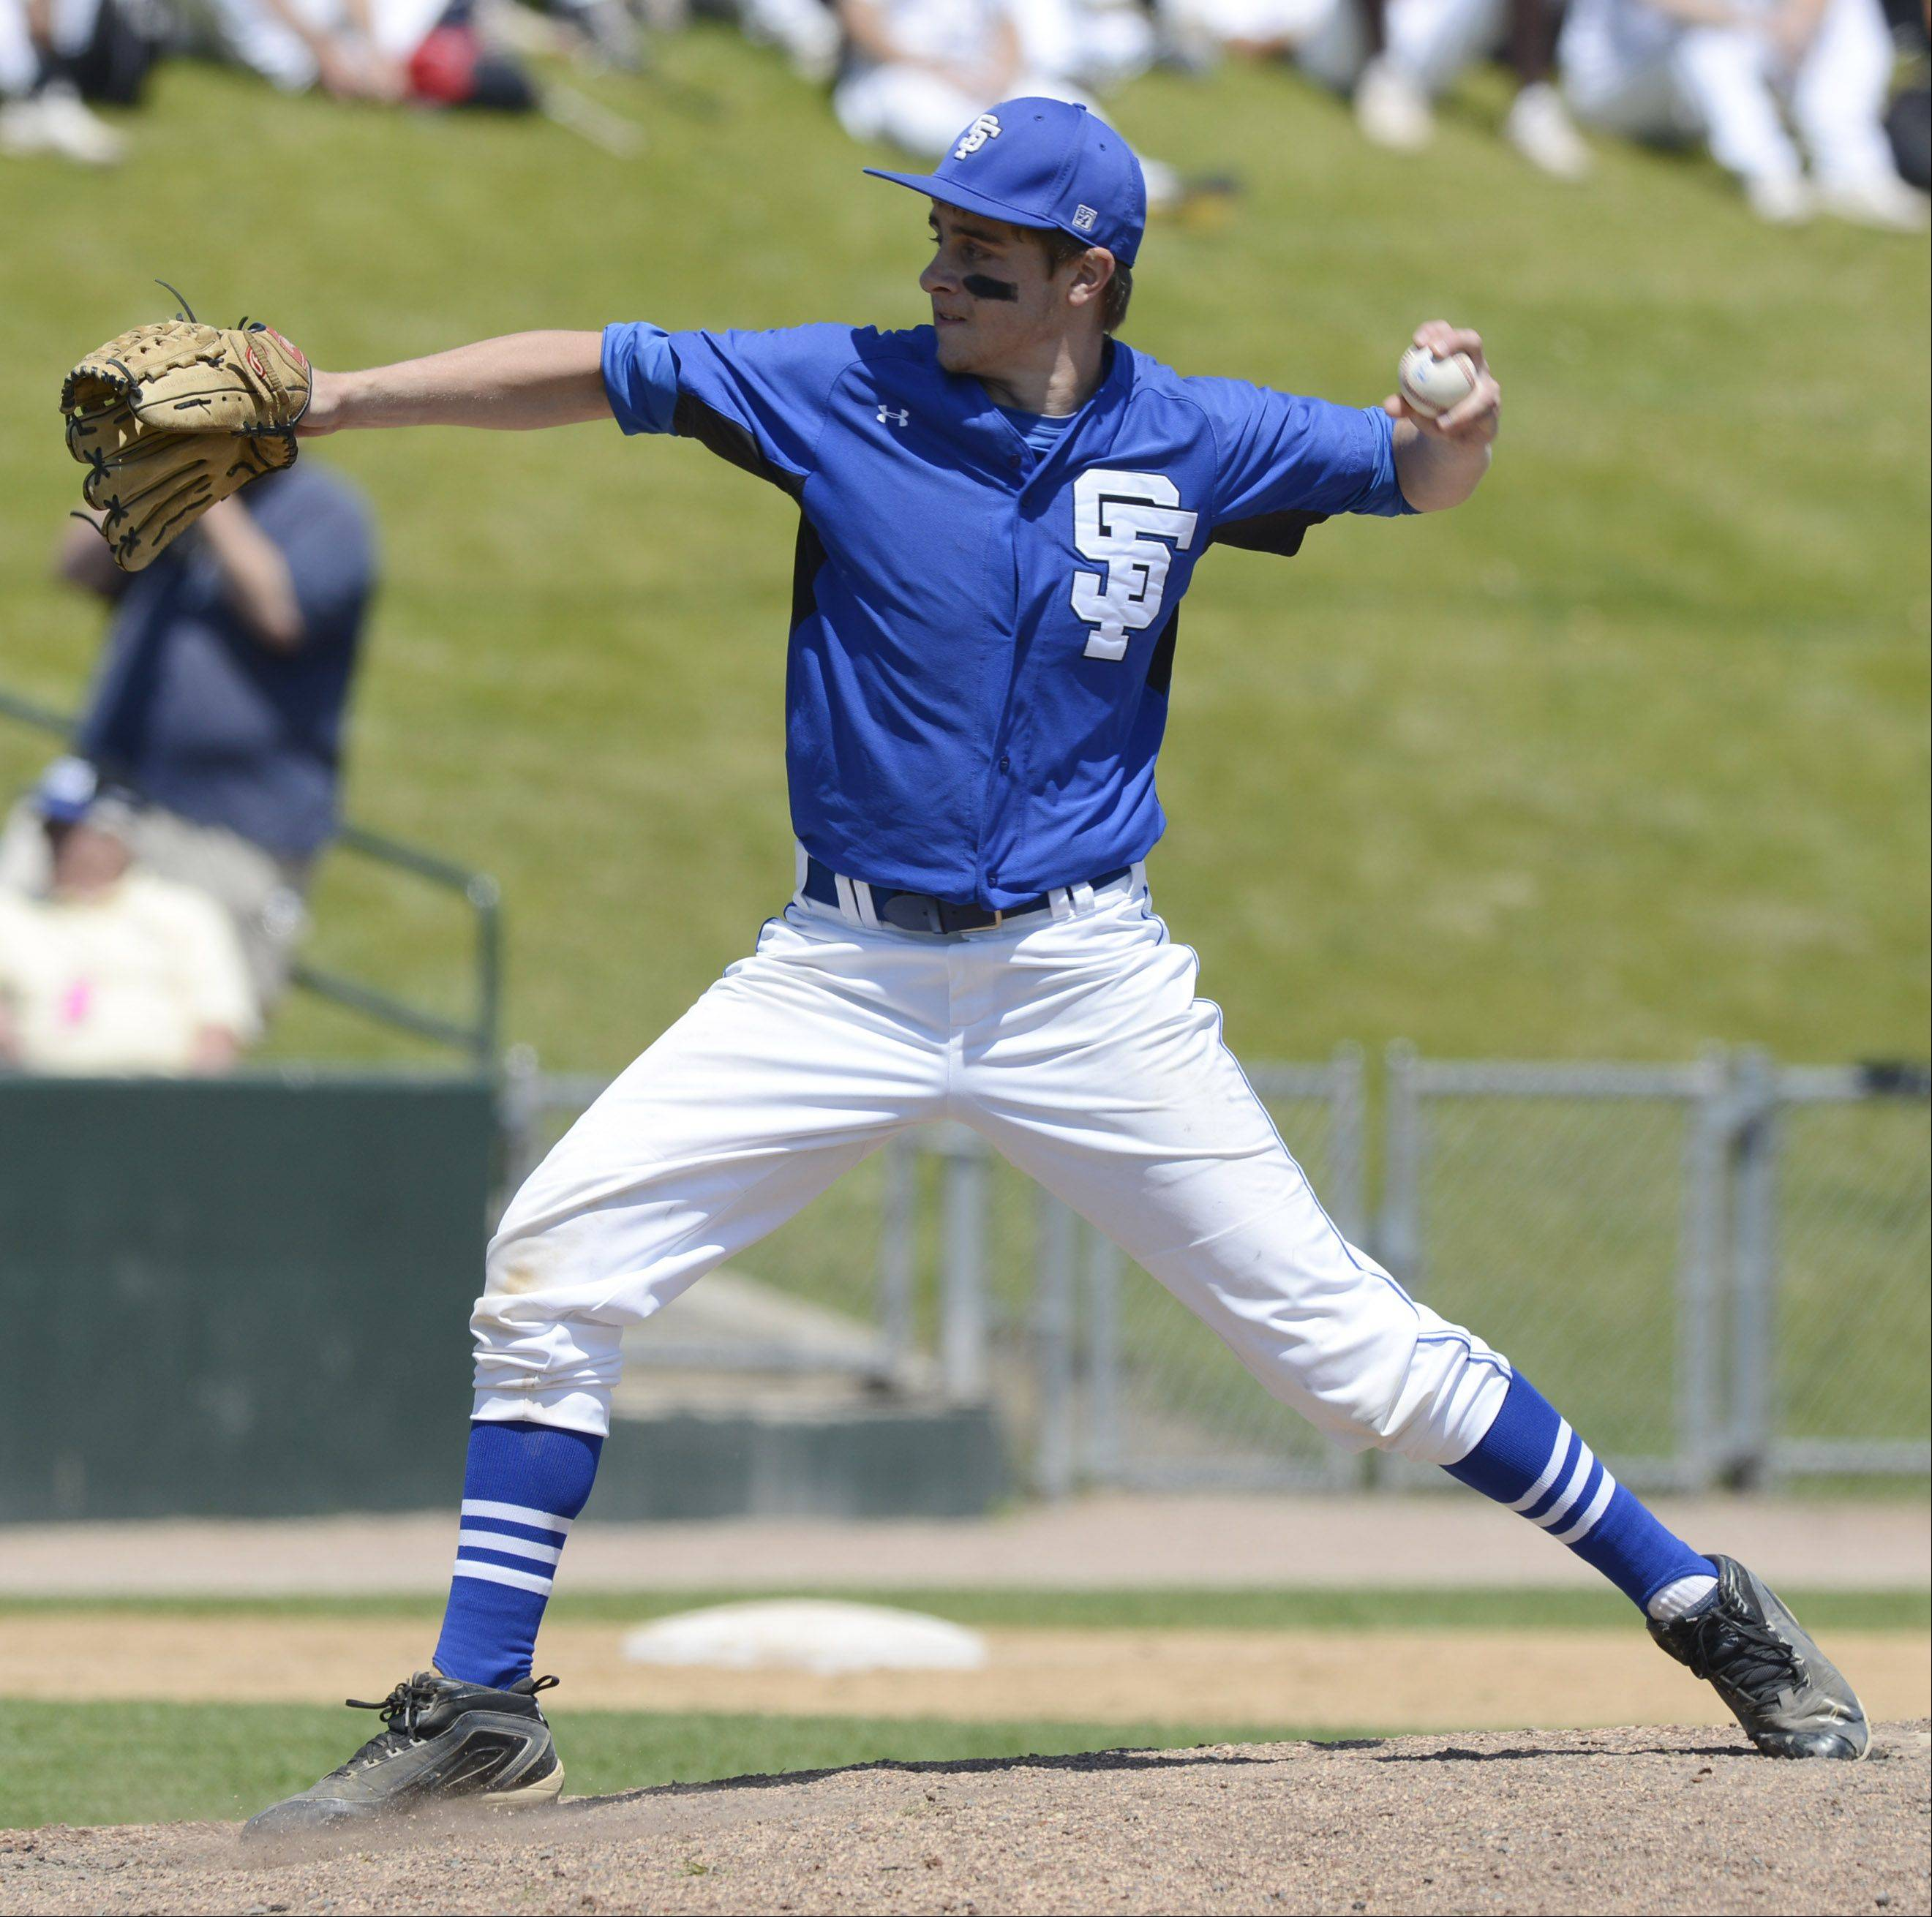 St. Francis relief pitcher Andrew Brundage deivers during the Class 3A state baseball semifinal against Grayslake Central at Silver Cross Field in Joliet Friday.